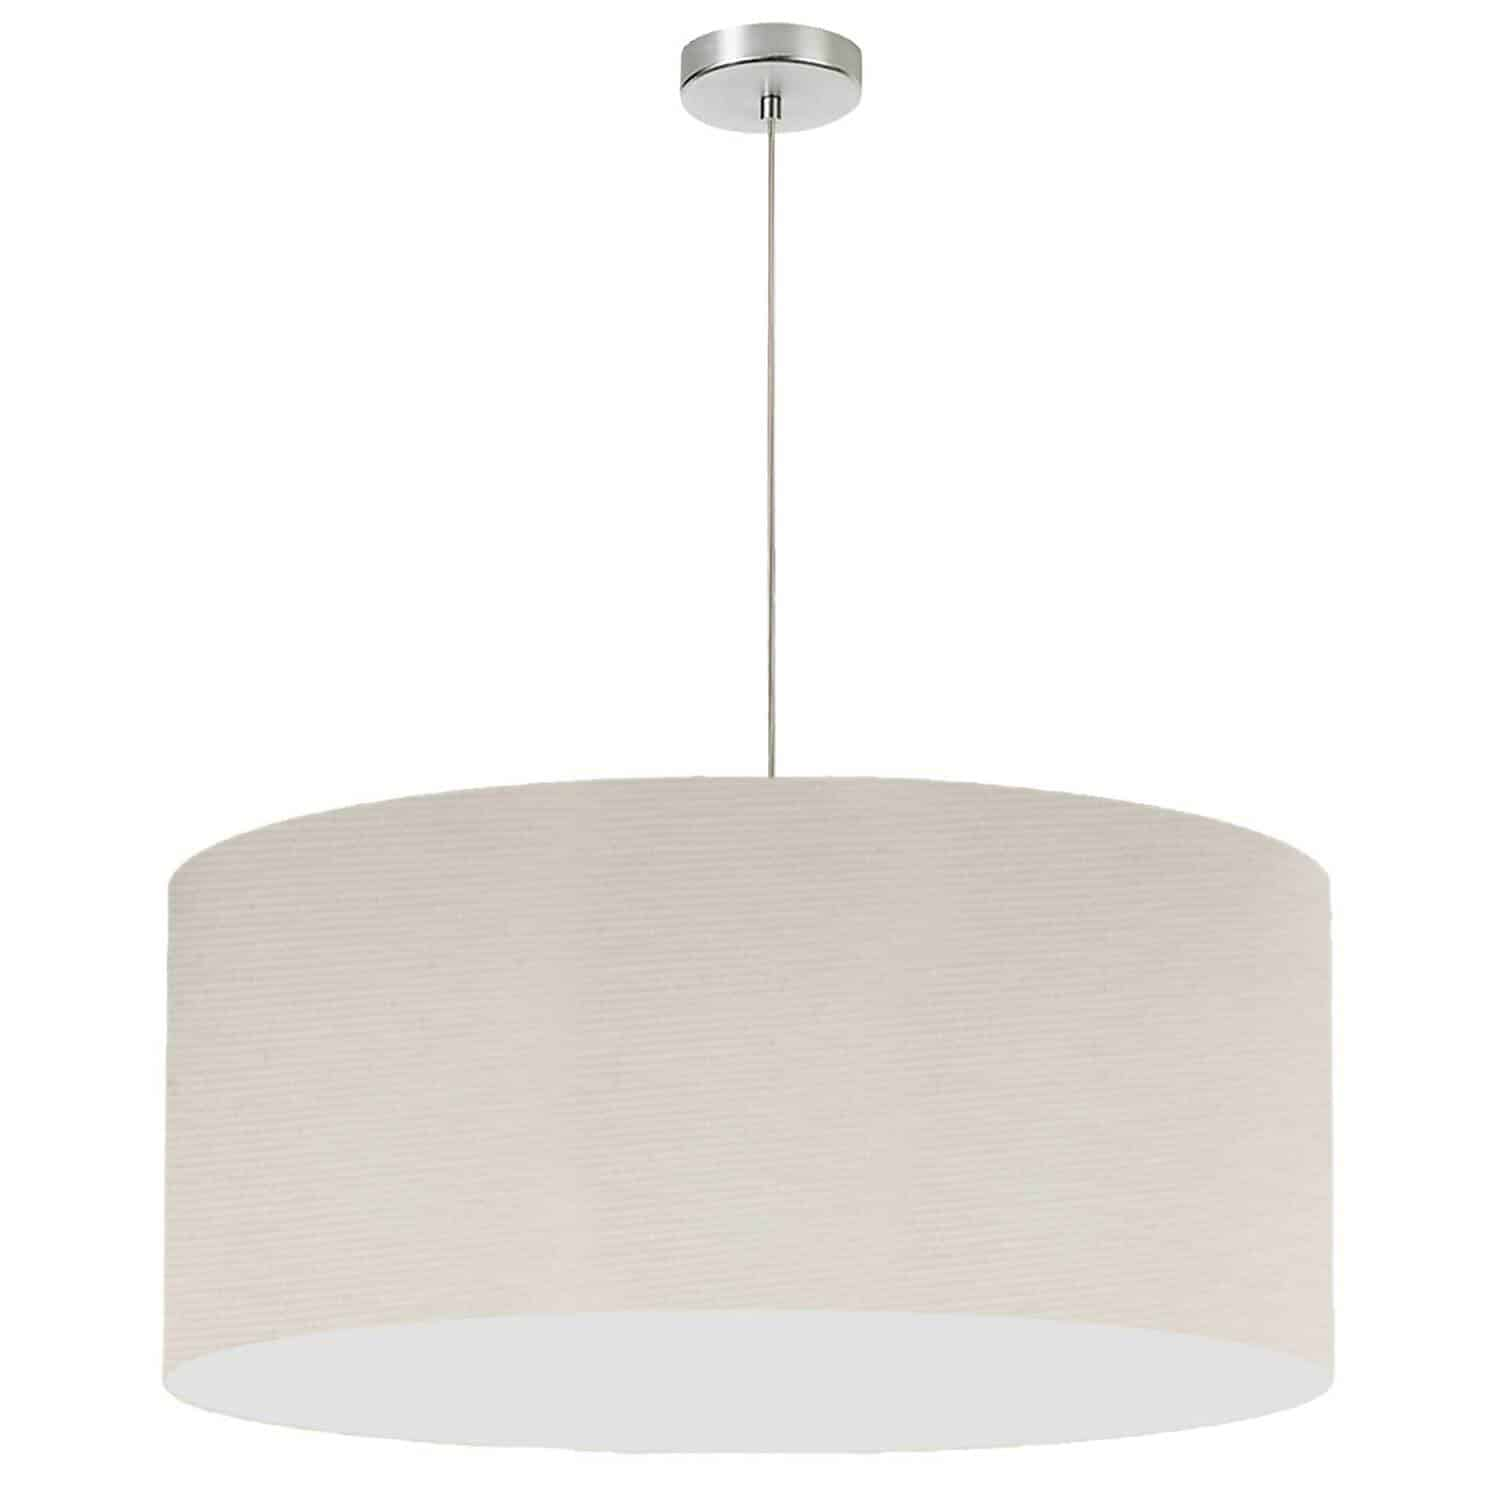 "1 Light, 28"" Drum Shade Pendant, No Bottom Diffuser, Beige Italian Linen Fabric"